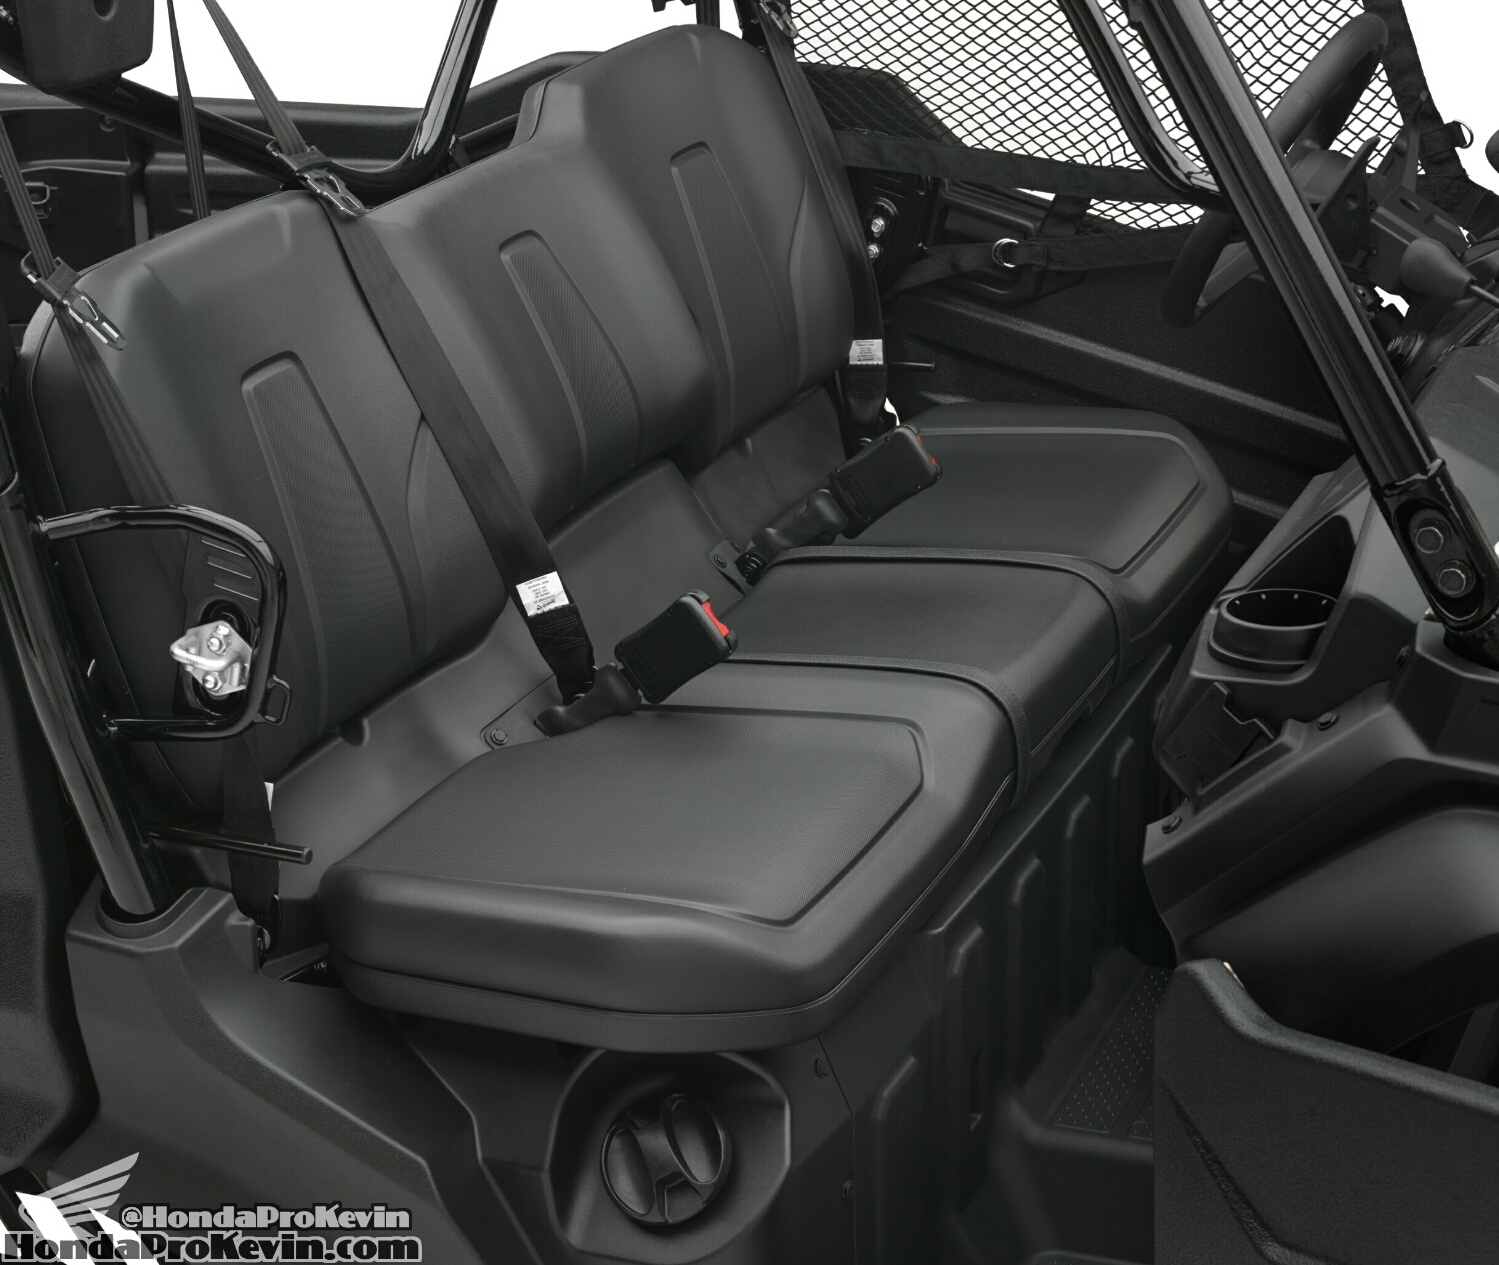 Honda Pioneer 1000 & 1000-5 Seats - Interior - Frame, Suspension, Engine Pictures - Photo Gallery - SxS / UTV / Side by Side ATV - SXS1000 - SXS1000M3 - SXS1000M5